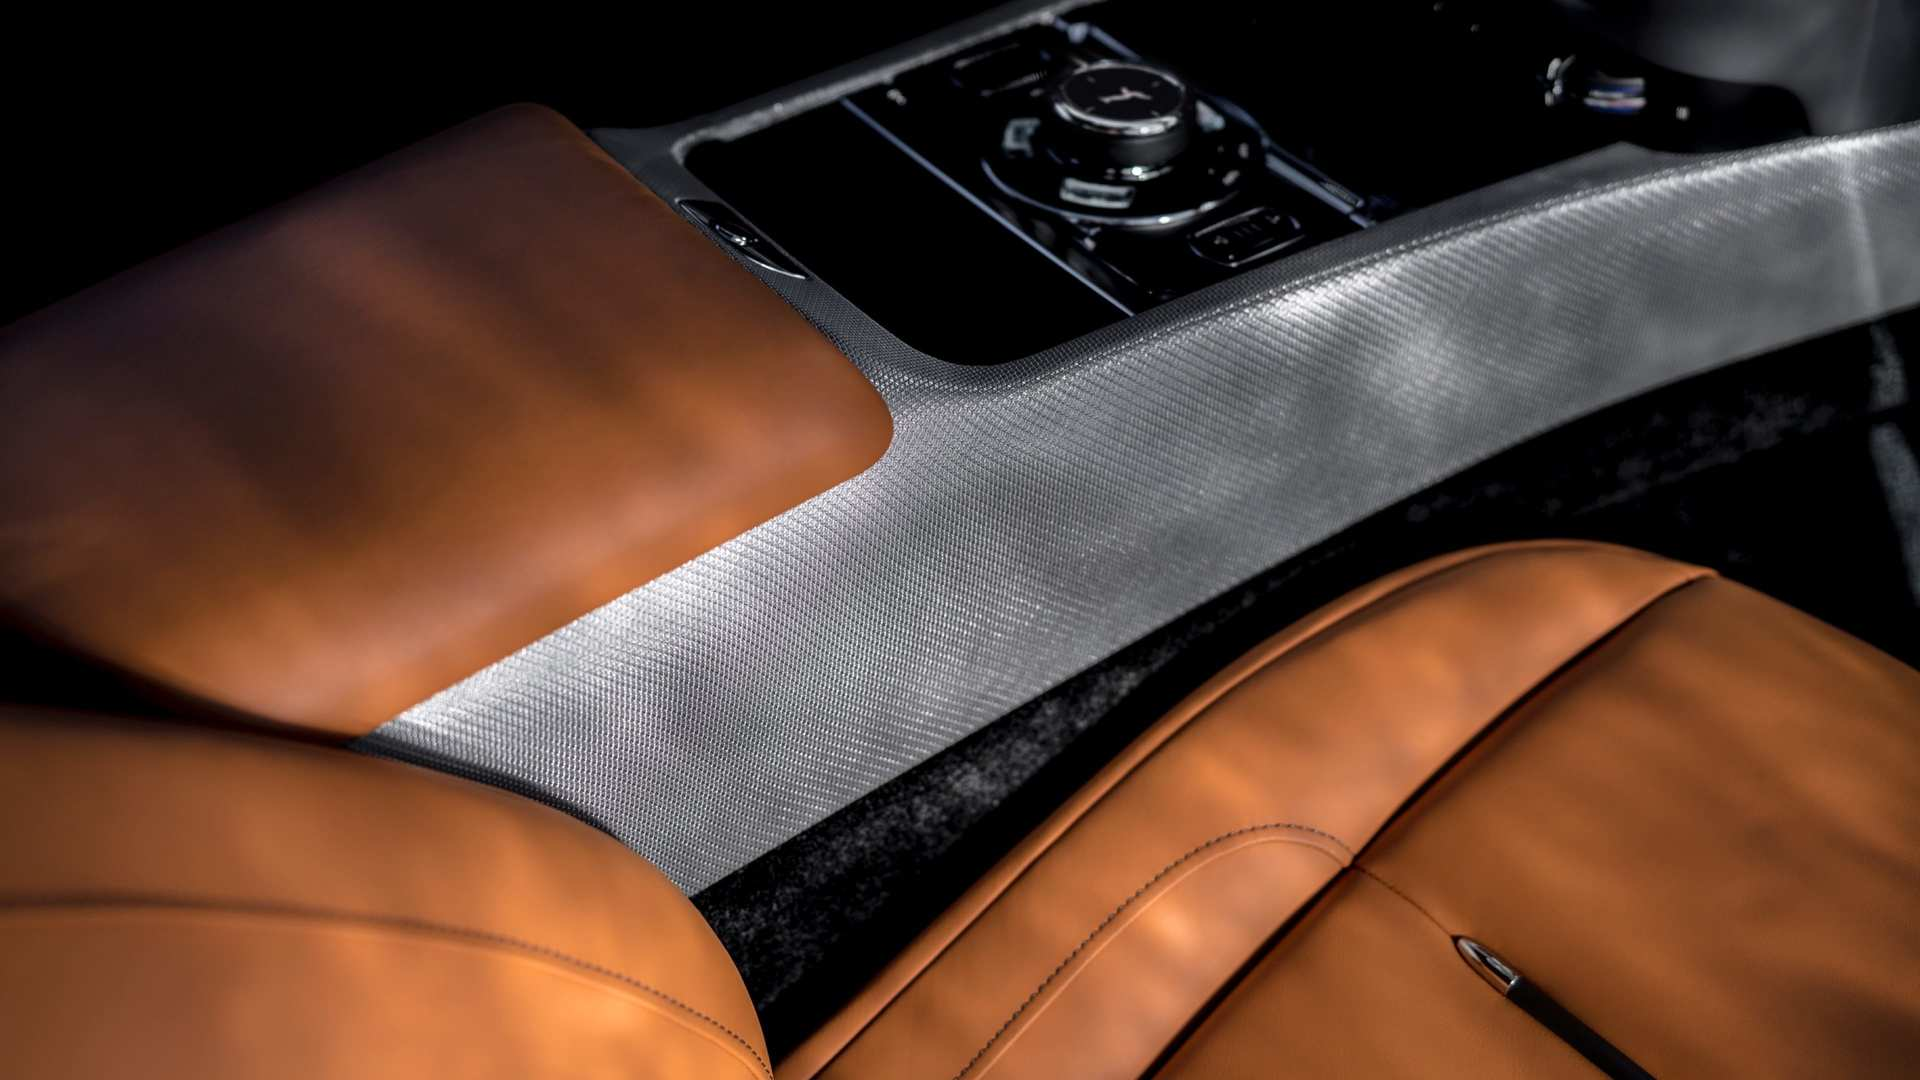 Rolls-Royce Wraith close up control panels next to seat, luminary collection